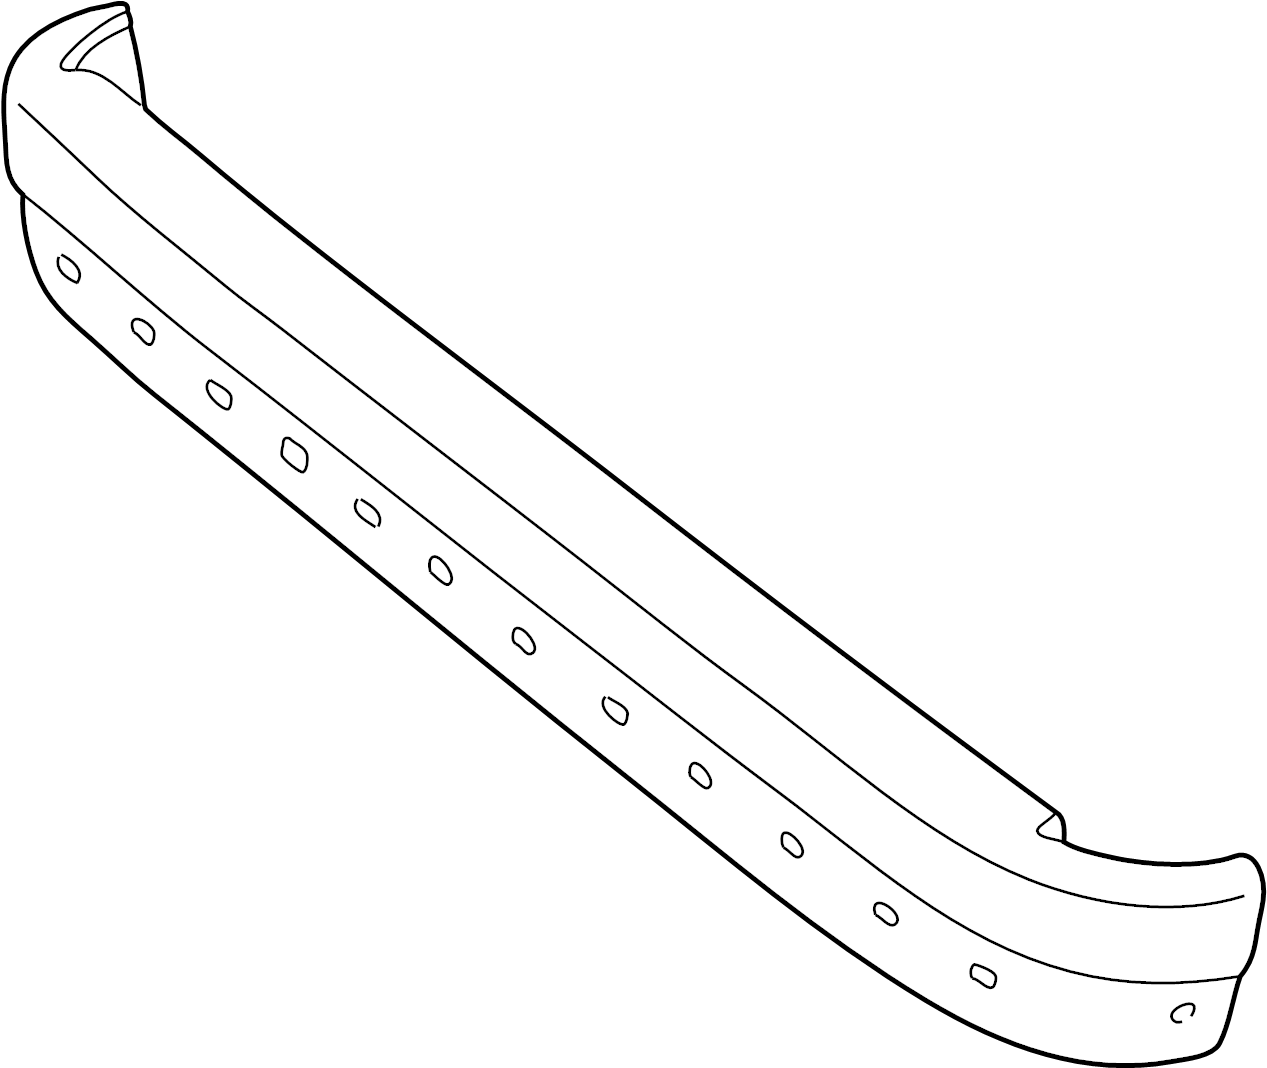 7c2z17906f - ford bumper  face  bar  assembly